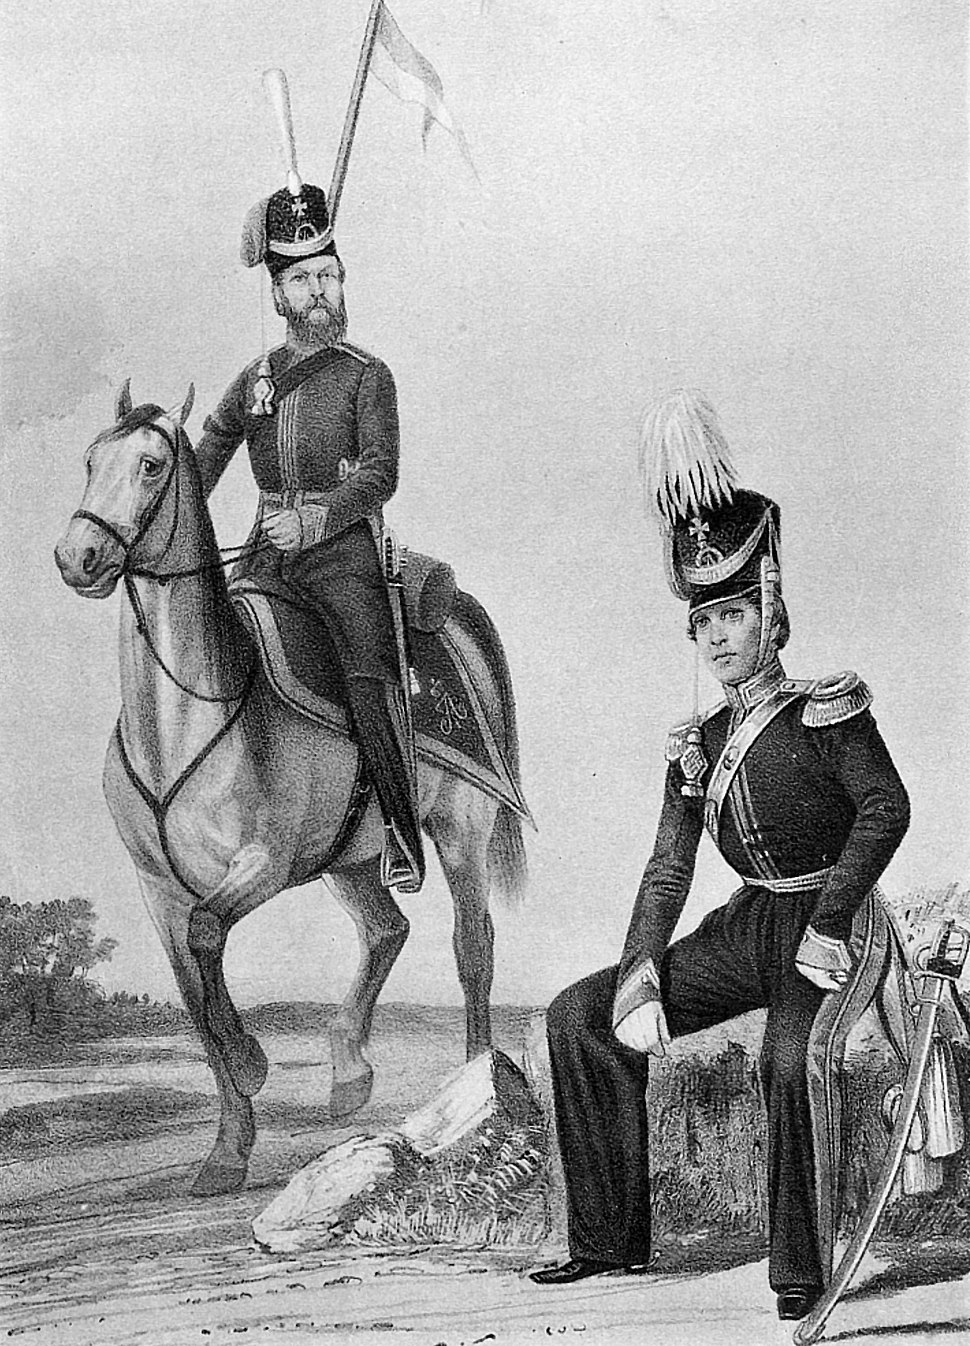 18 2552 Book illustrations of Historical description of the clothes and weapons of Russian troops